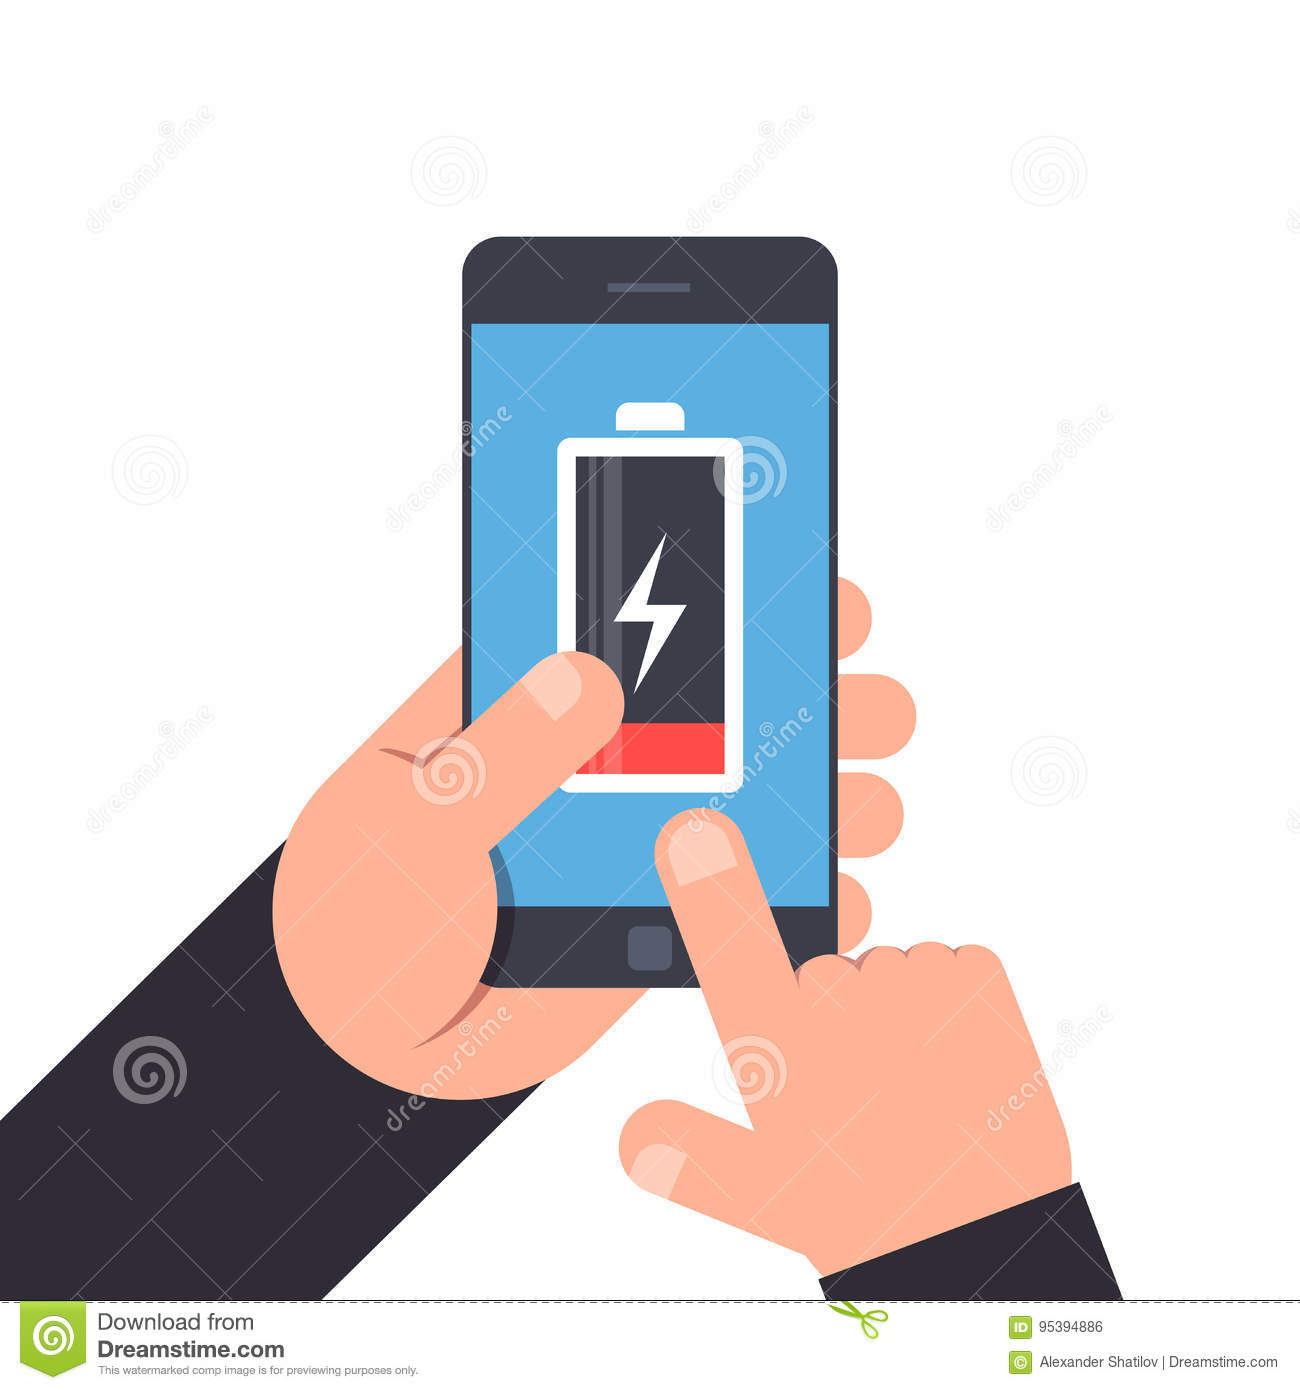 Hand holding and pointing to a smartphone. Low battery life of mobile phone. Battery icon on blue background smartphone